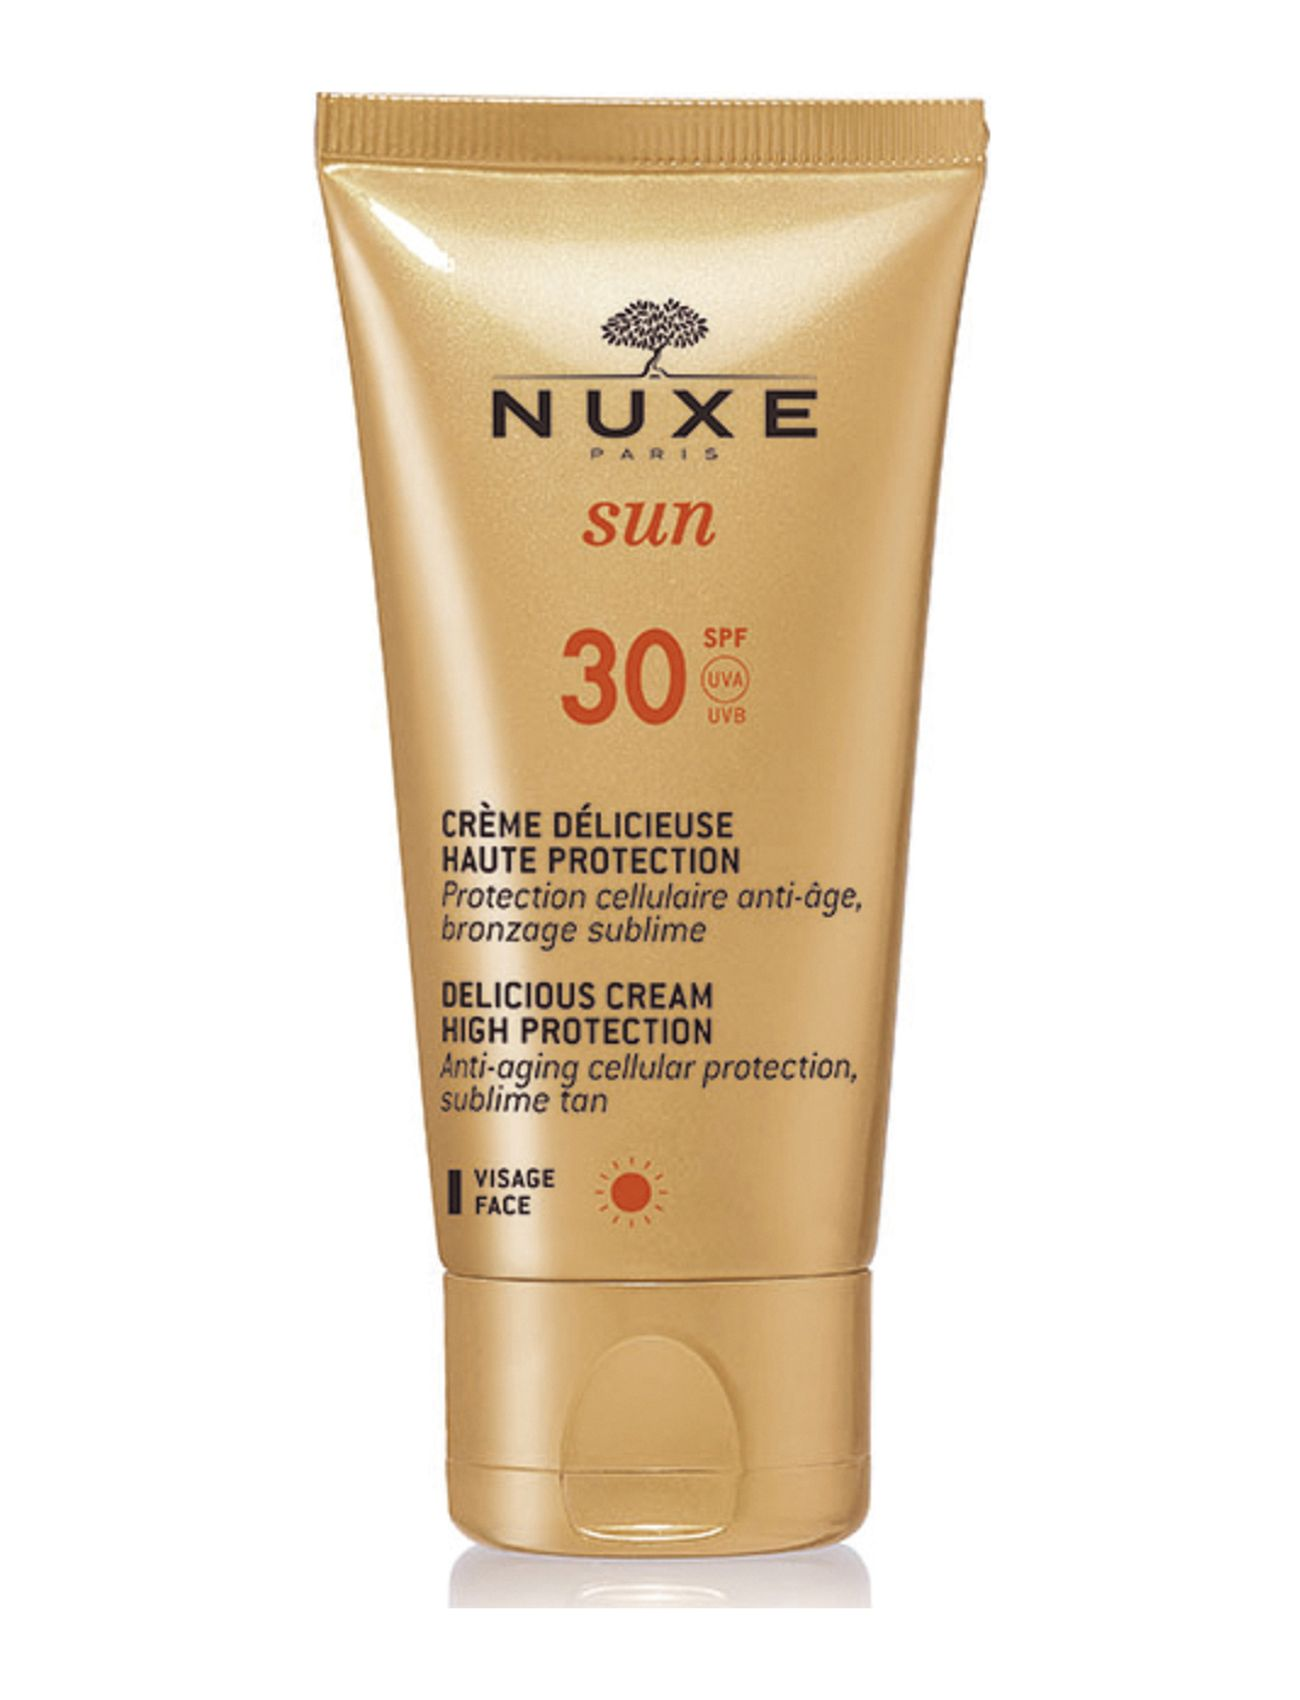 Image of Delicious Cream For Face Spf30 Beauty MEN Skin Care Sun Products Face Nude NUXE (3041219151)